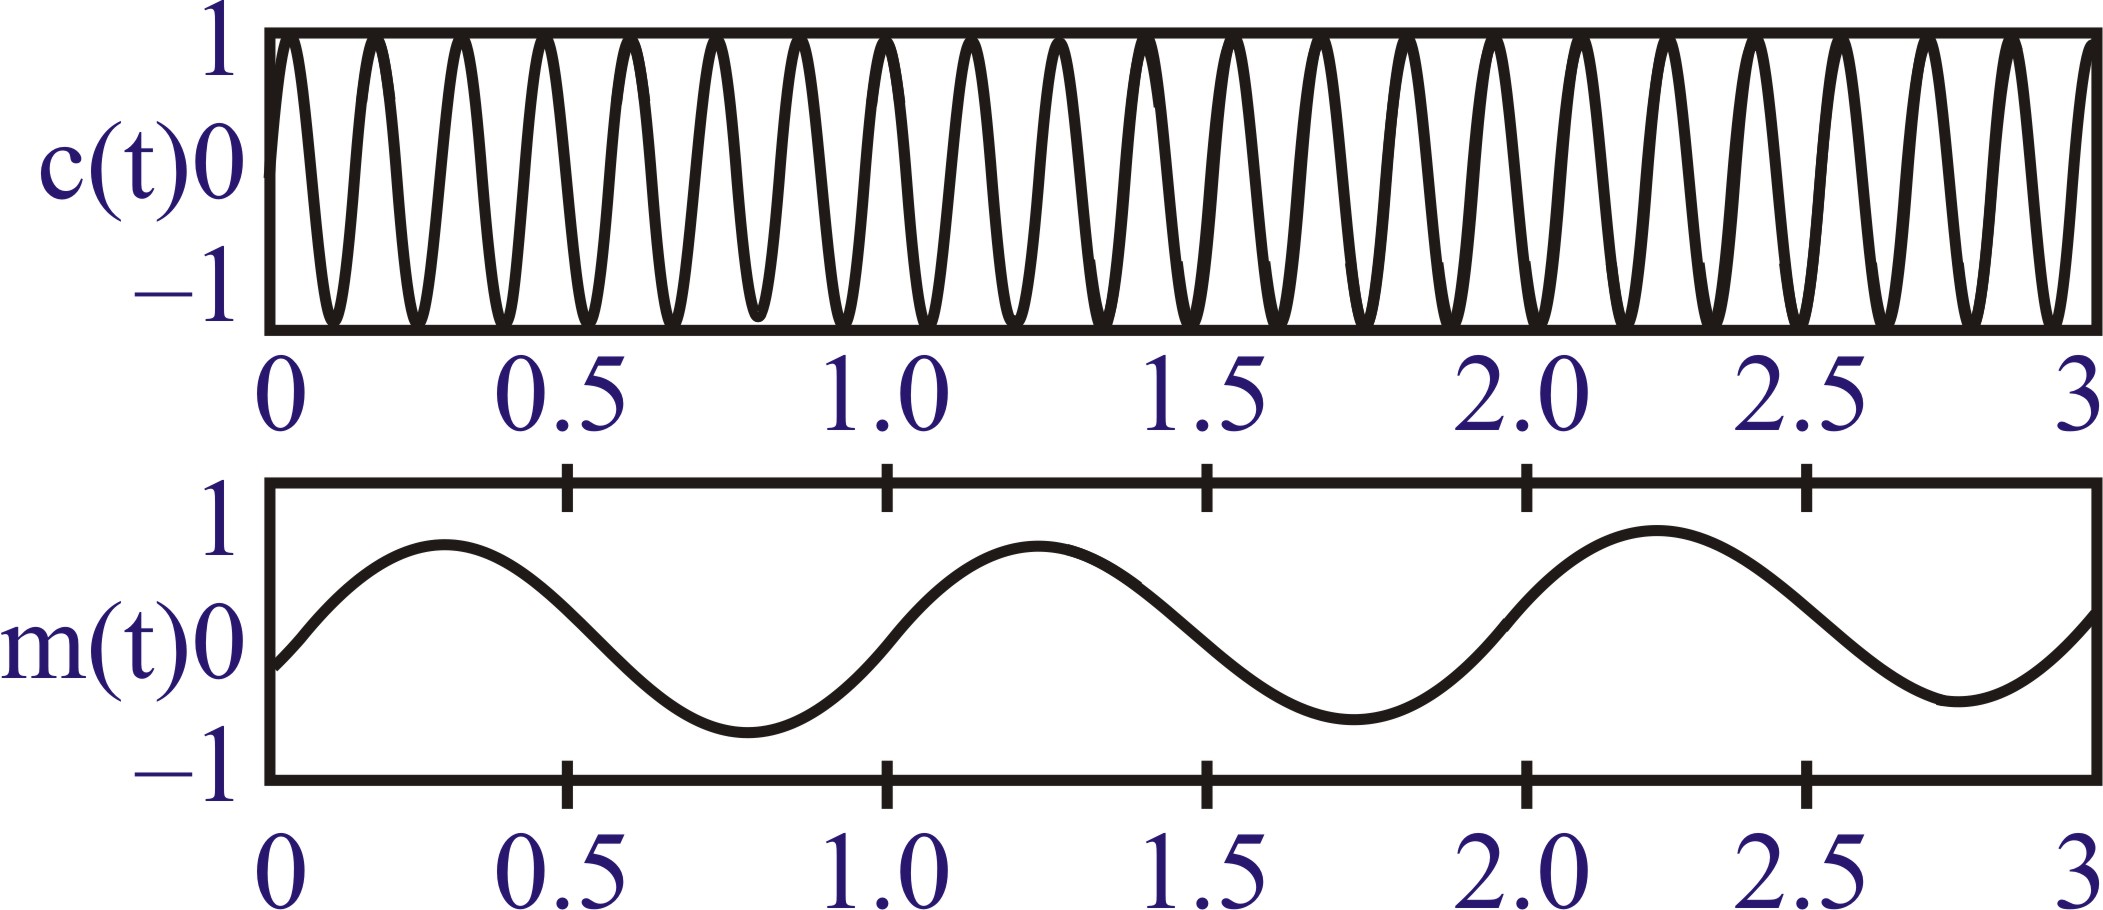 Communication System Previous Years Questions Radio Waves Diagram The Basic Shape Of Wave